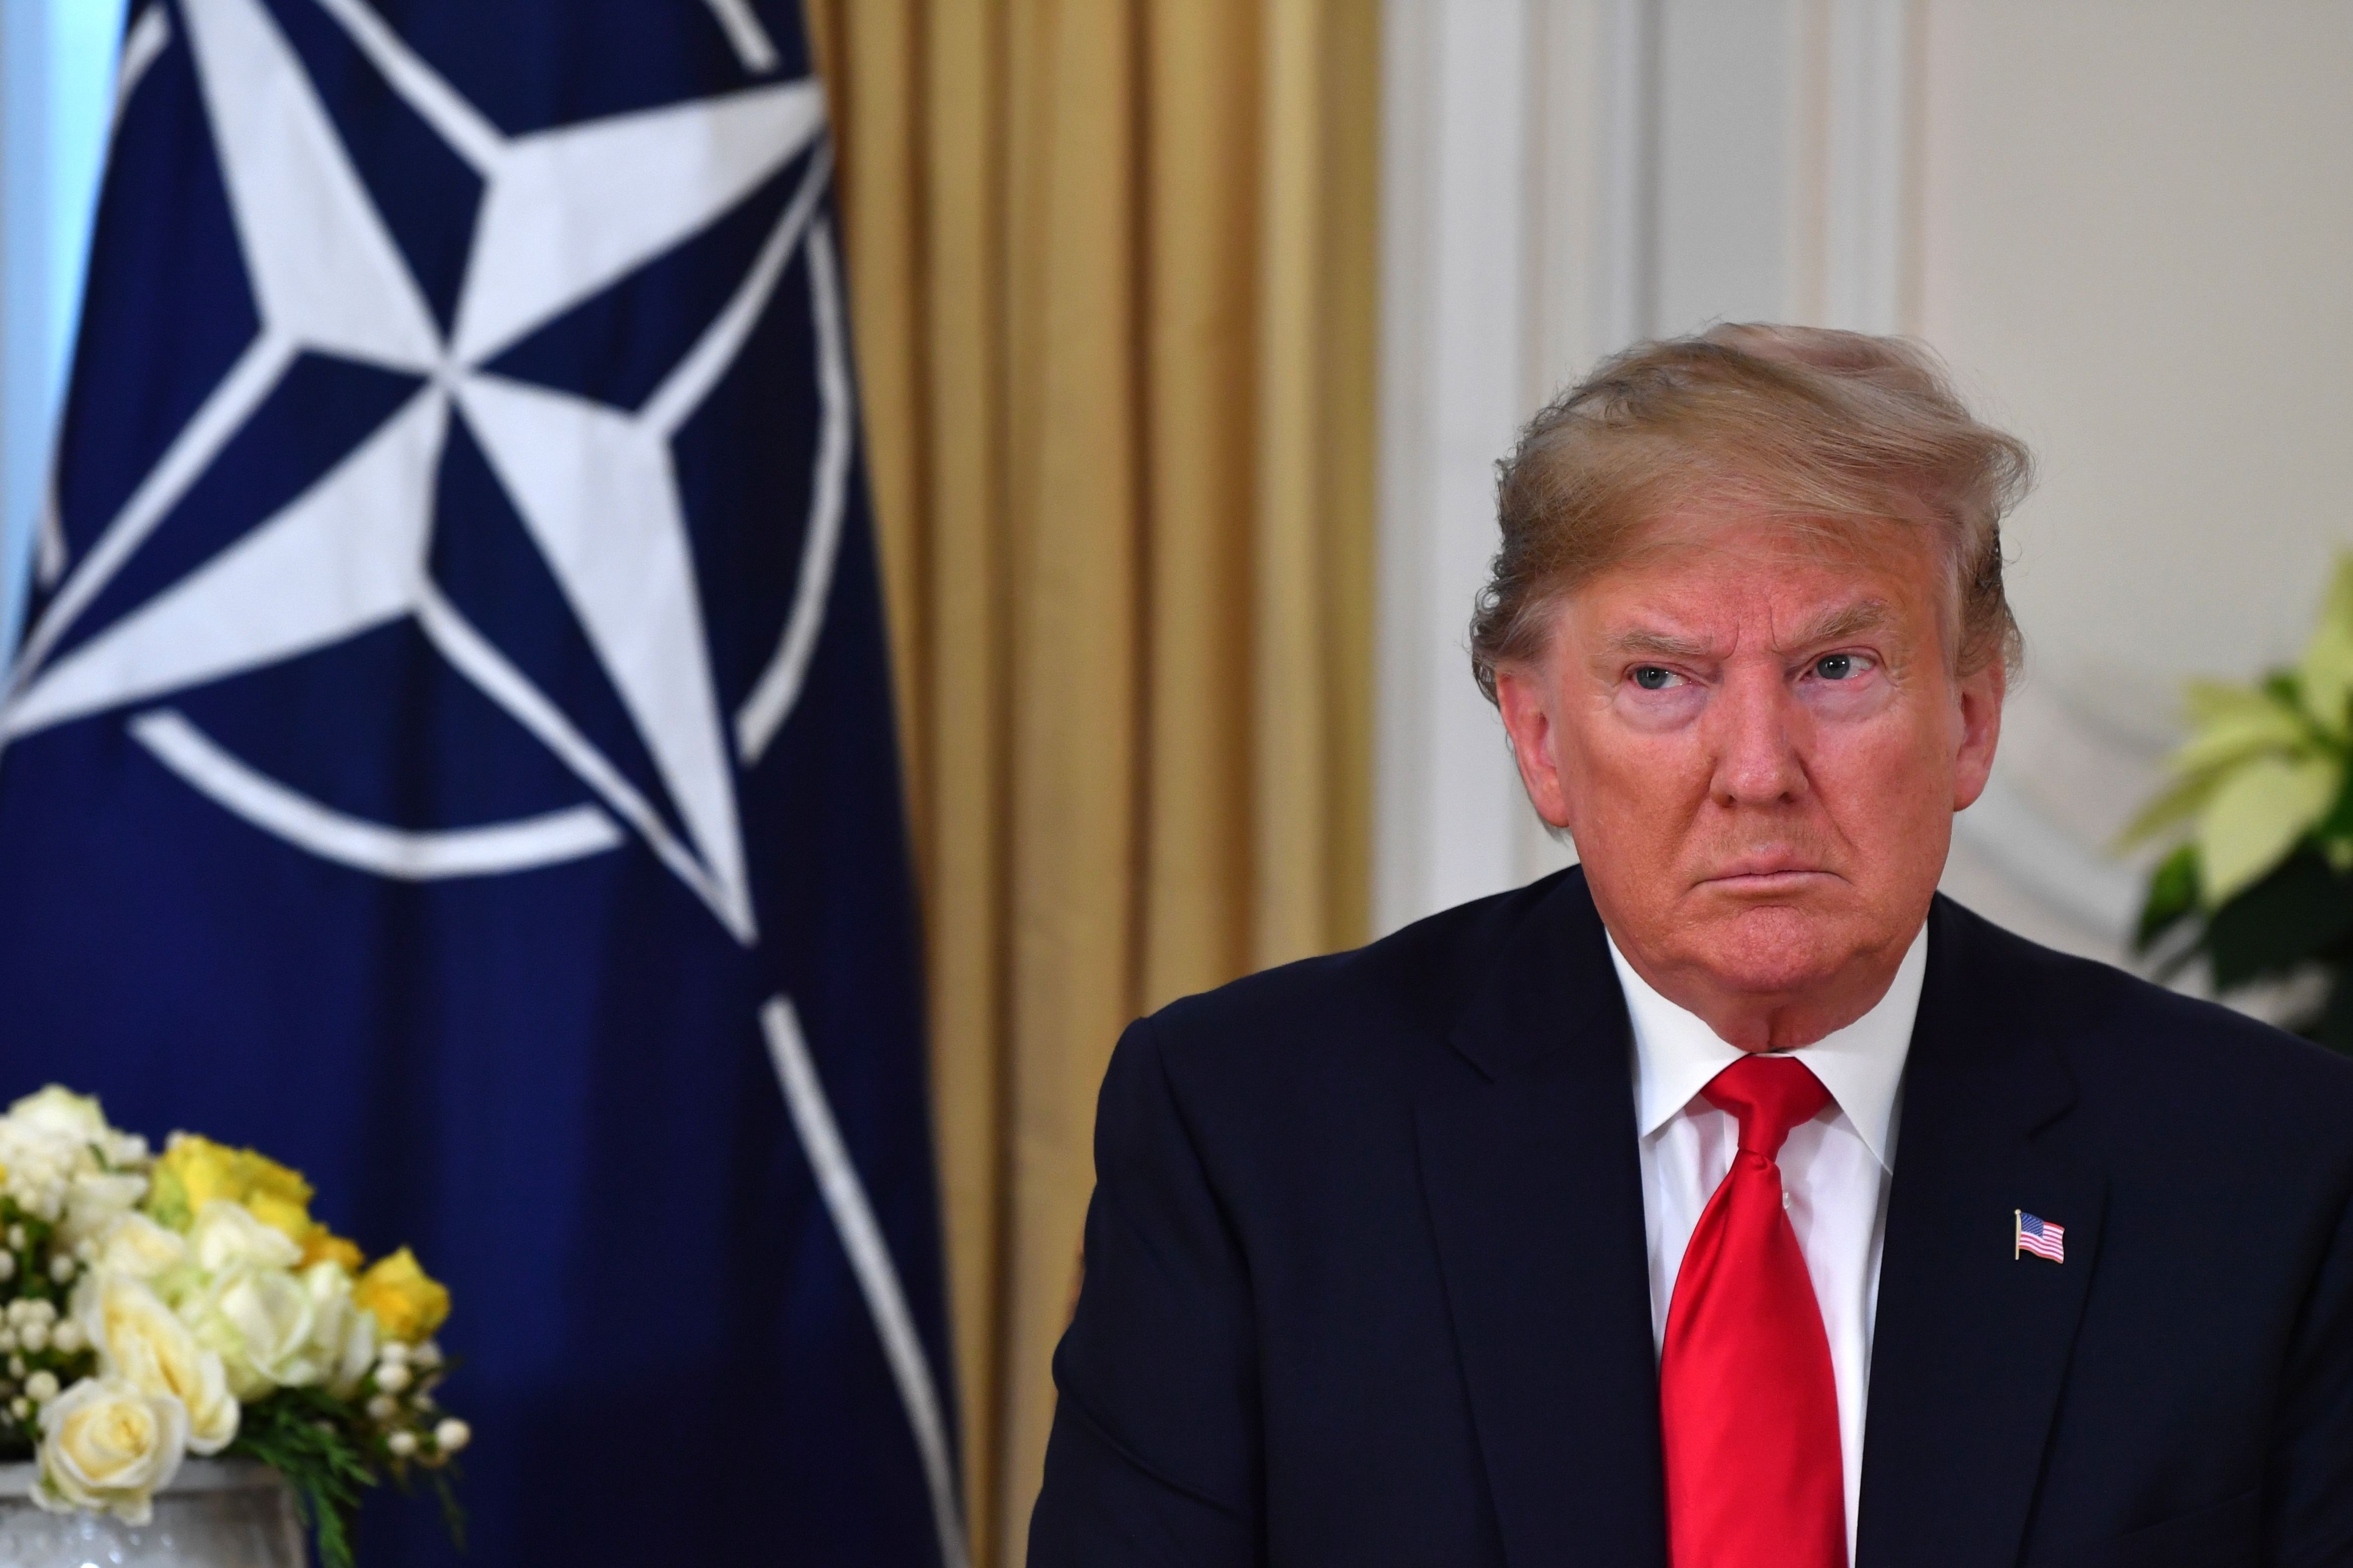 US President Donald Trump speaks during his meeting with Nato Secretary General Jens Stoltenberg at Winfield House, London on Dec. 3, 2019.